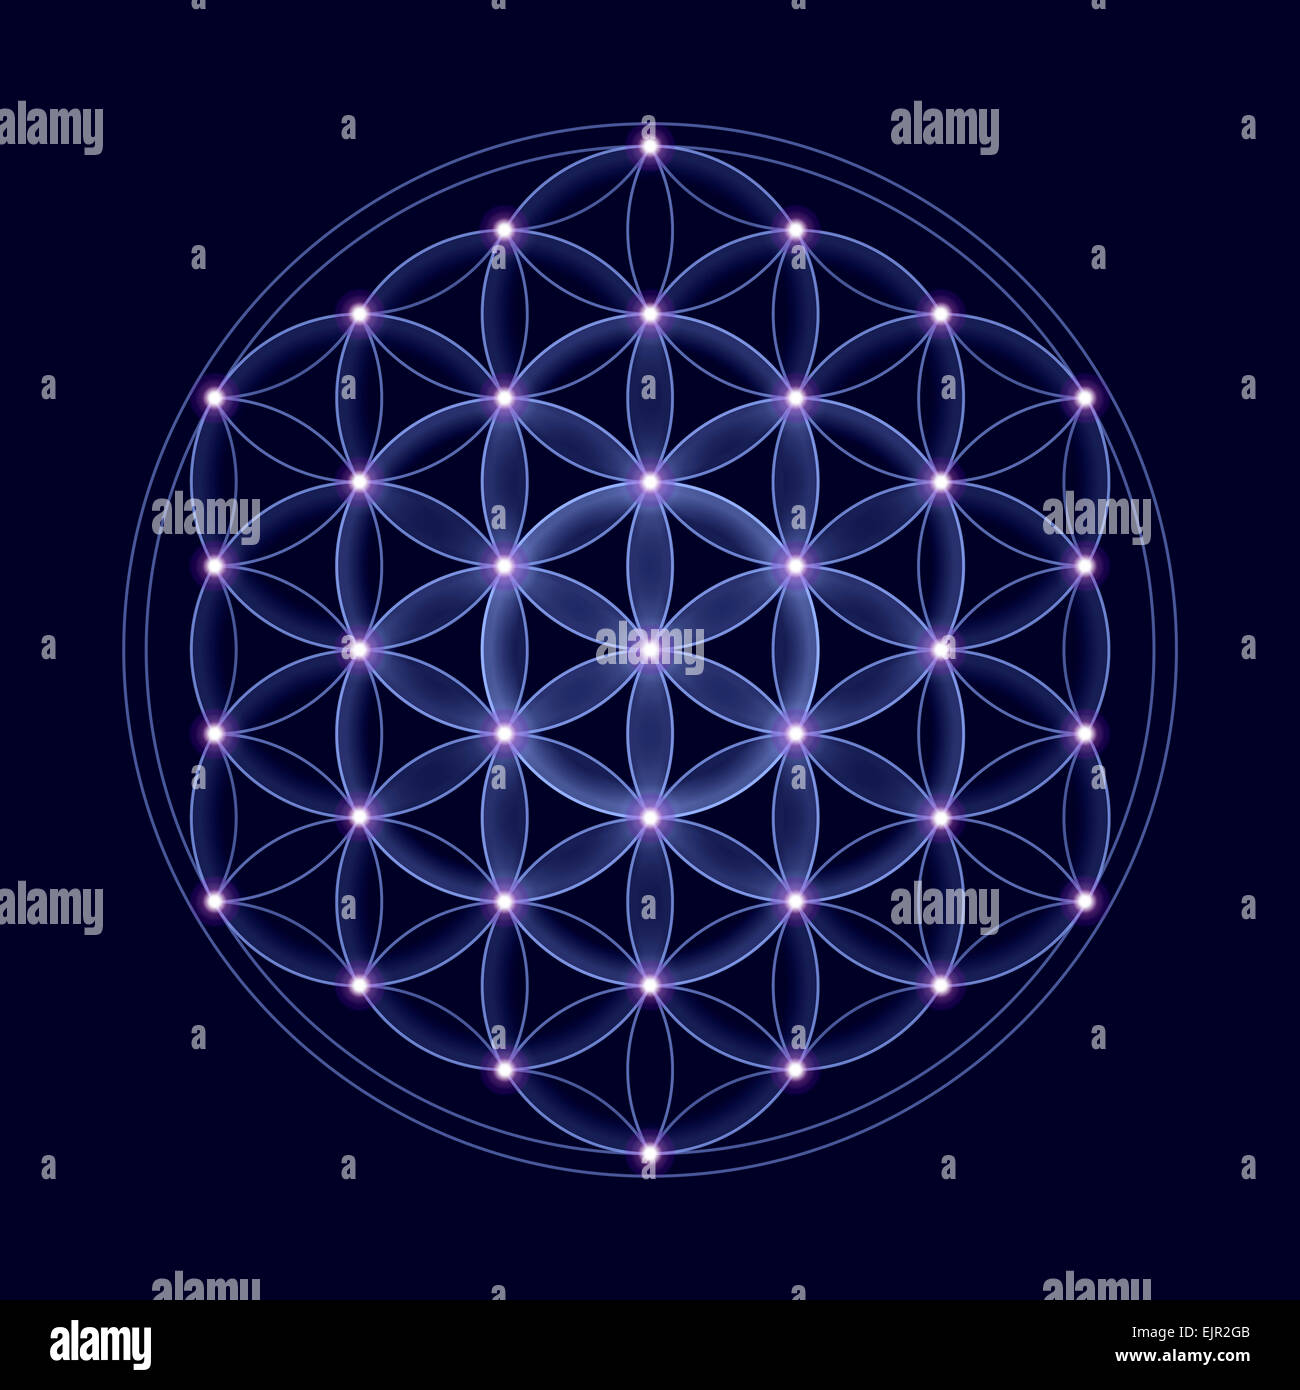 Cosmic Flower of Life with stars on dark blue background, a spiritual symbol and Sacred Geometry since ancient times. - Stock Image